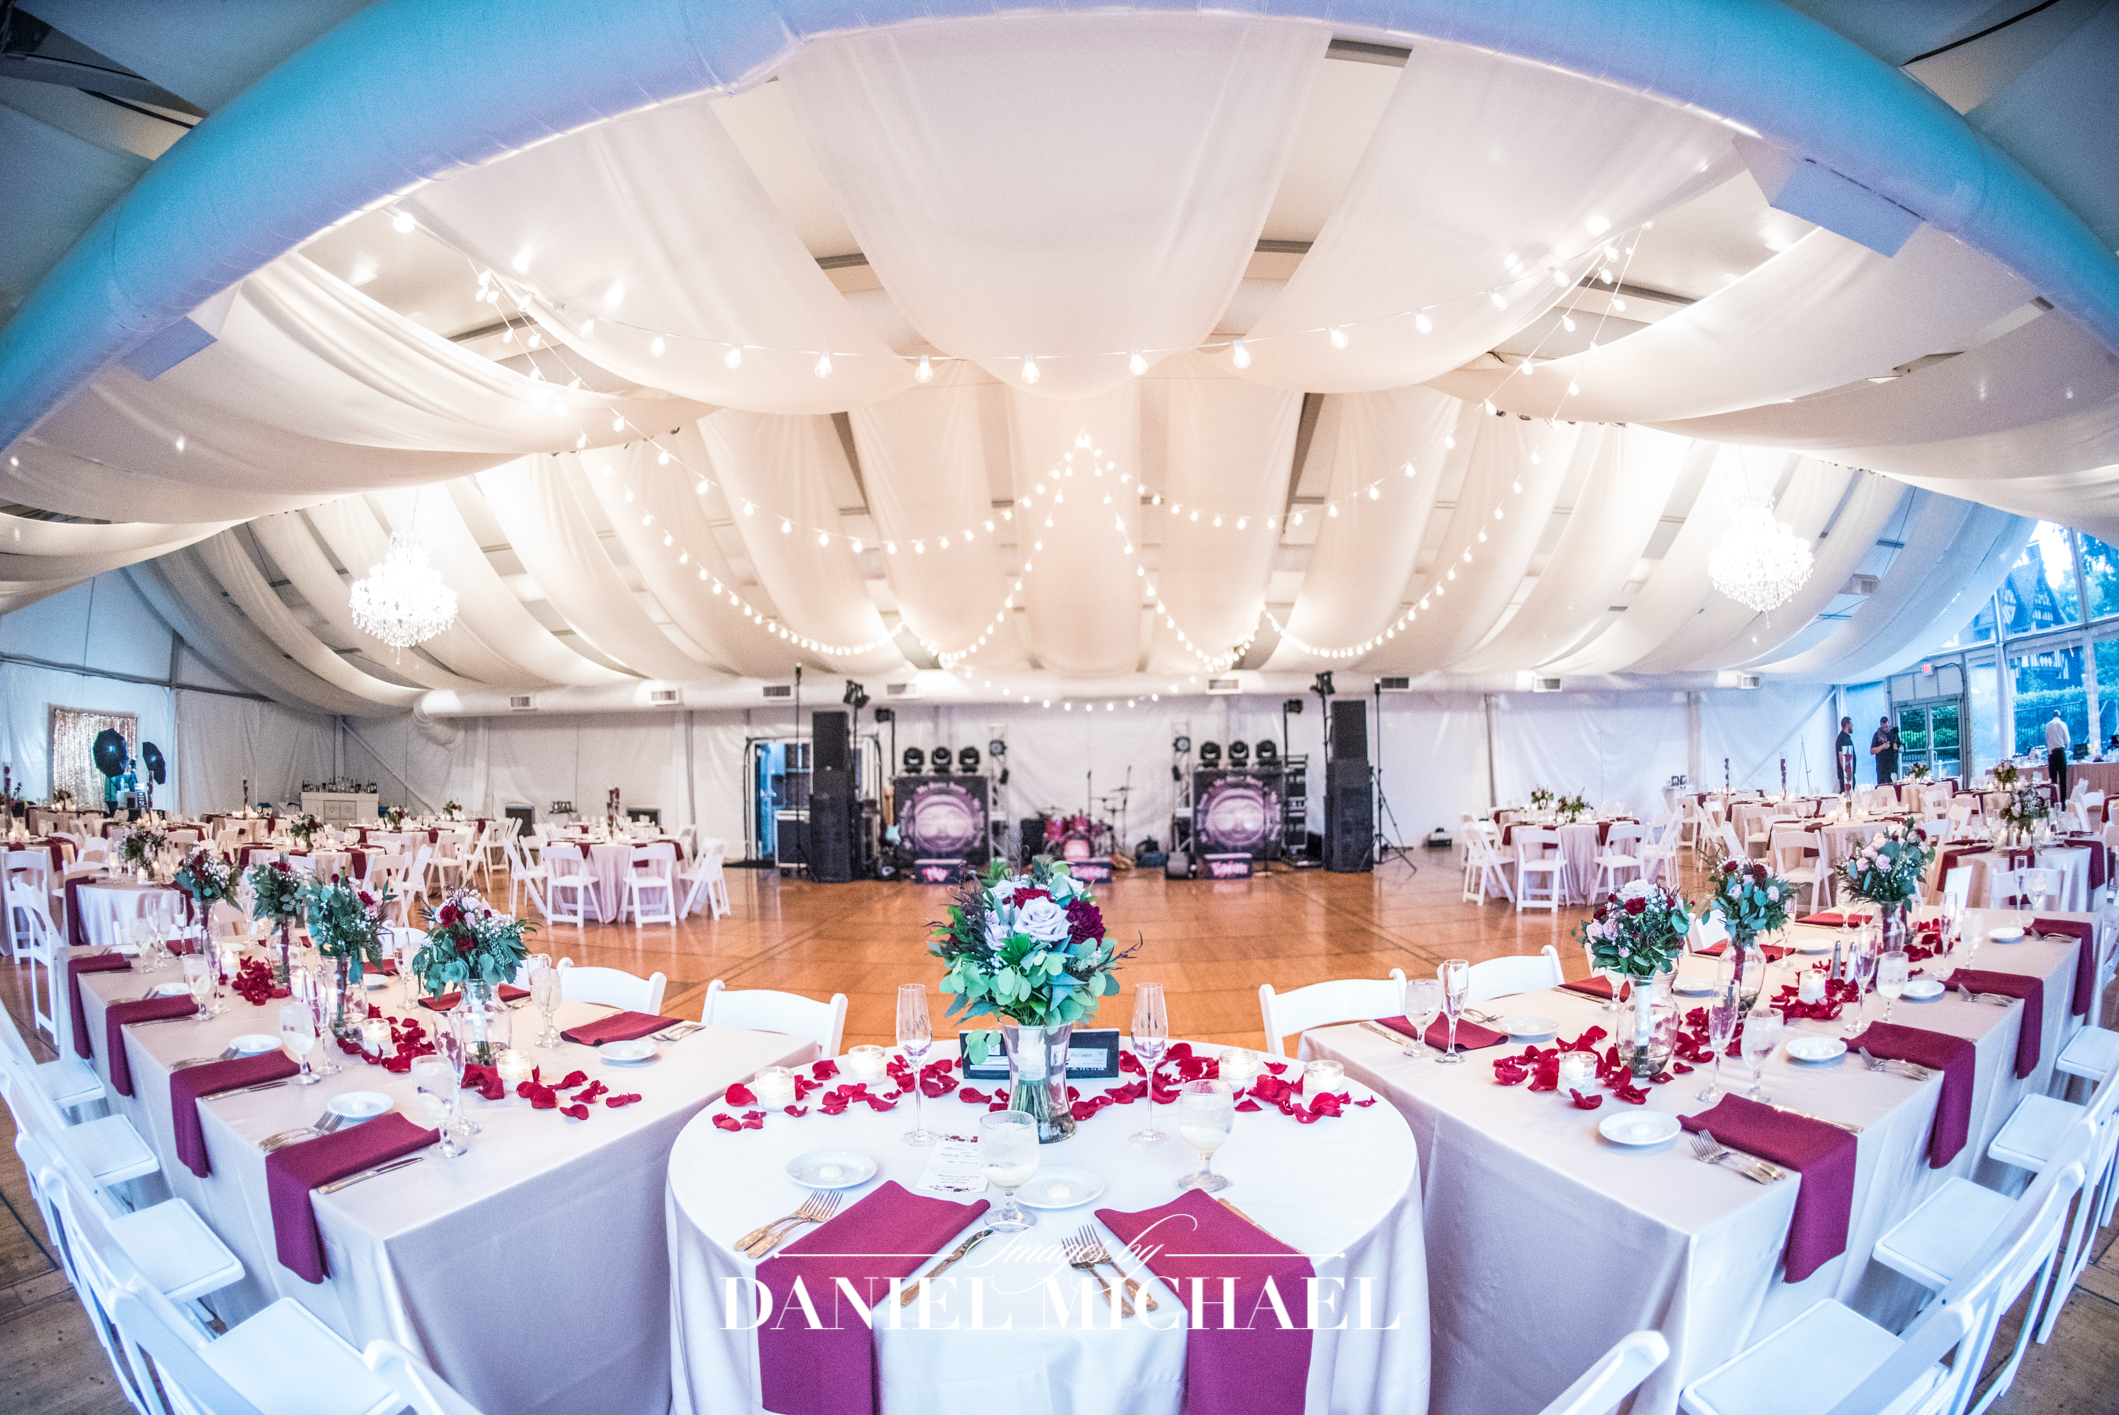 Pinecroft Venue Wedding Reception Photographer